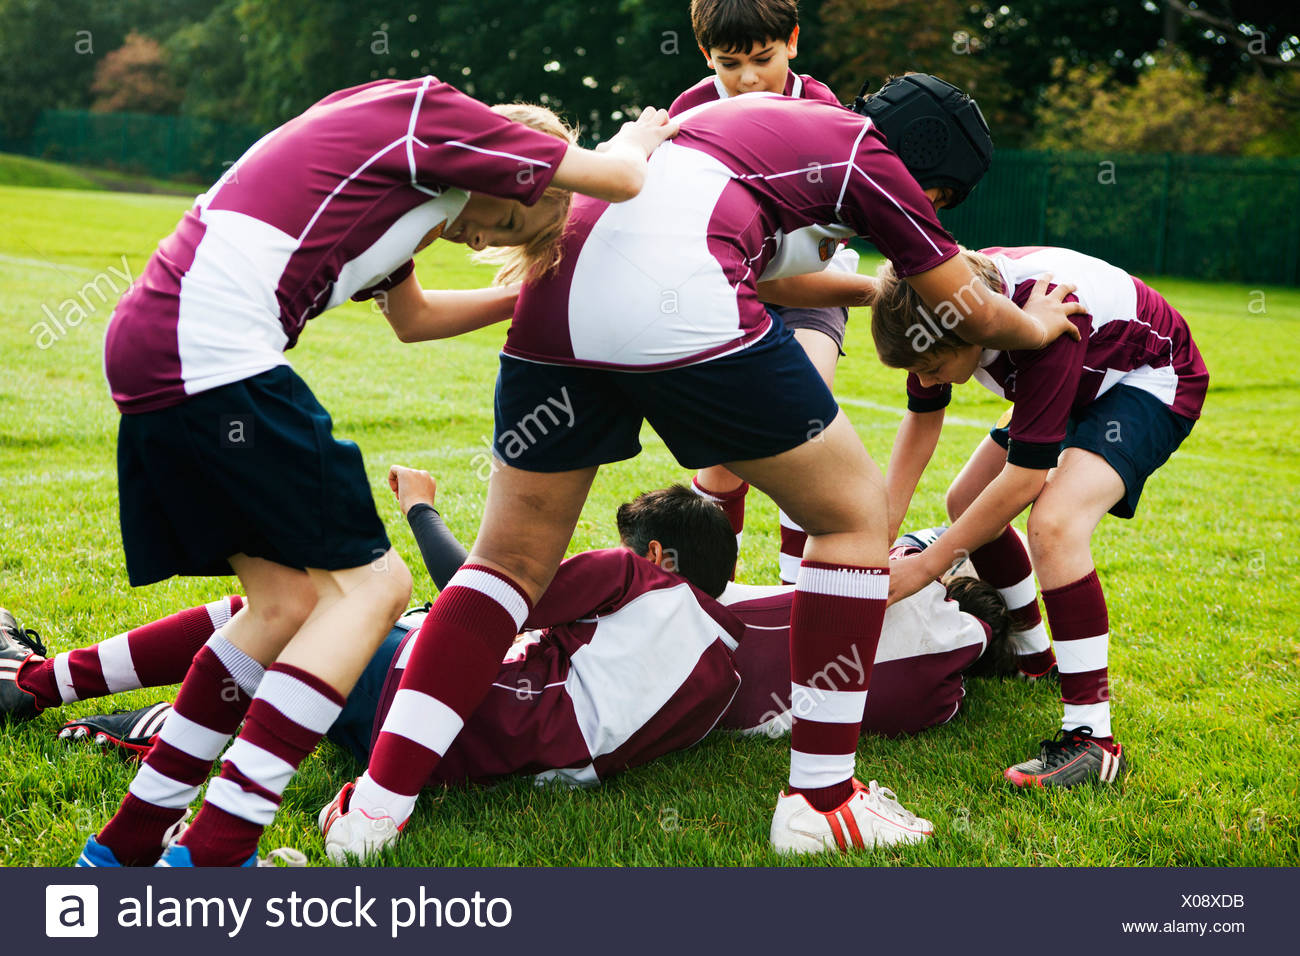 L'équipe de rugby d'écolier adolescents jouant agressivement Photo Stock